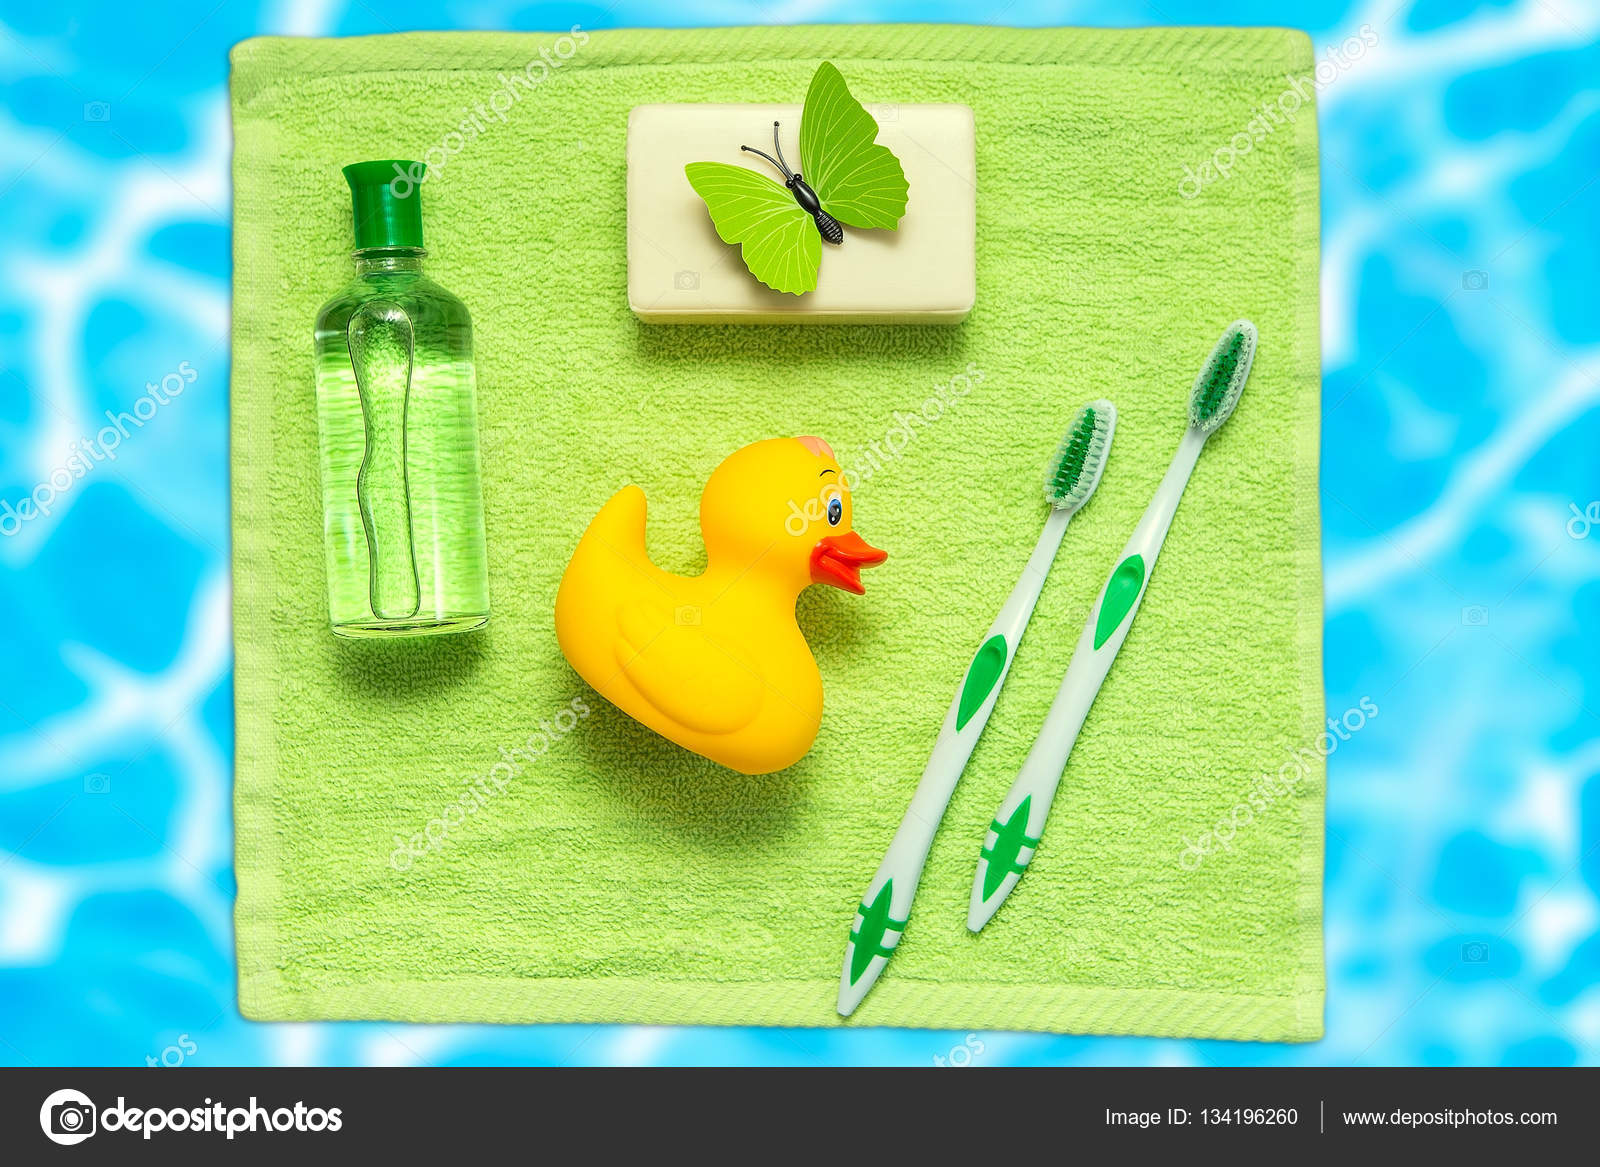 Bathroom Accessories On A Green Towel Rubber Ducky Toothbrushes